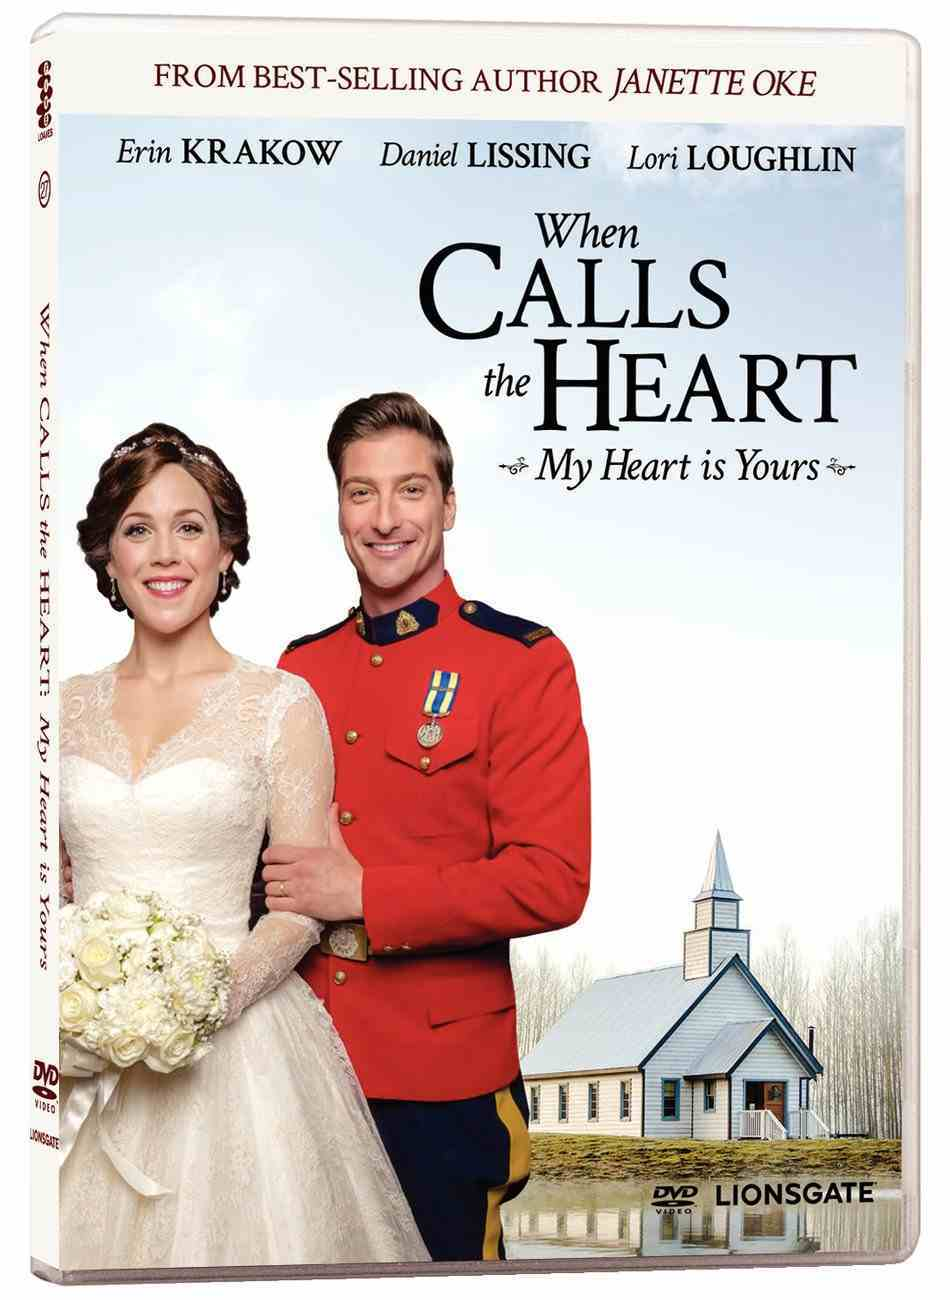 When Calls the Heart #27: My Heart is Yours DVD